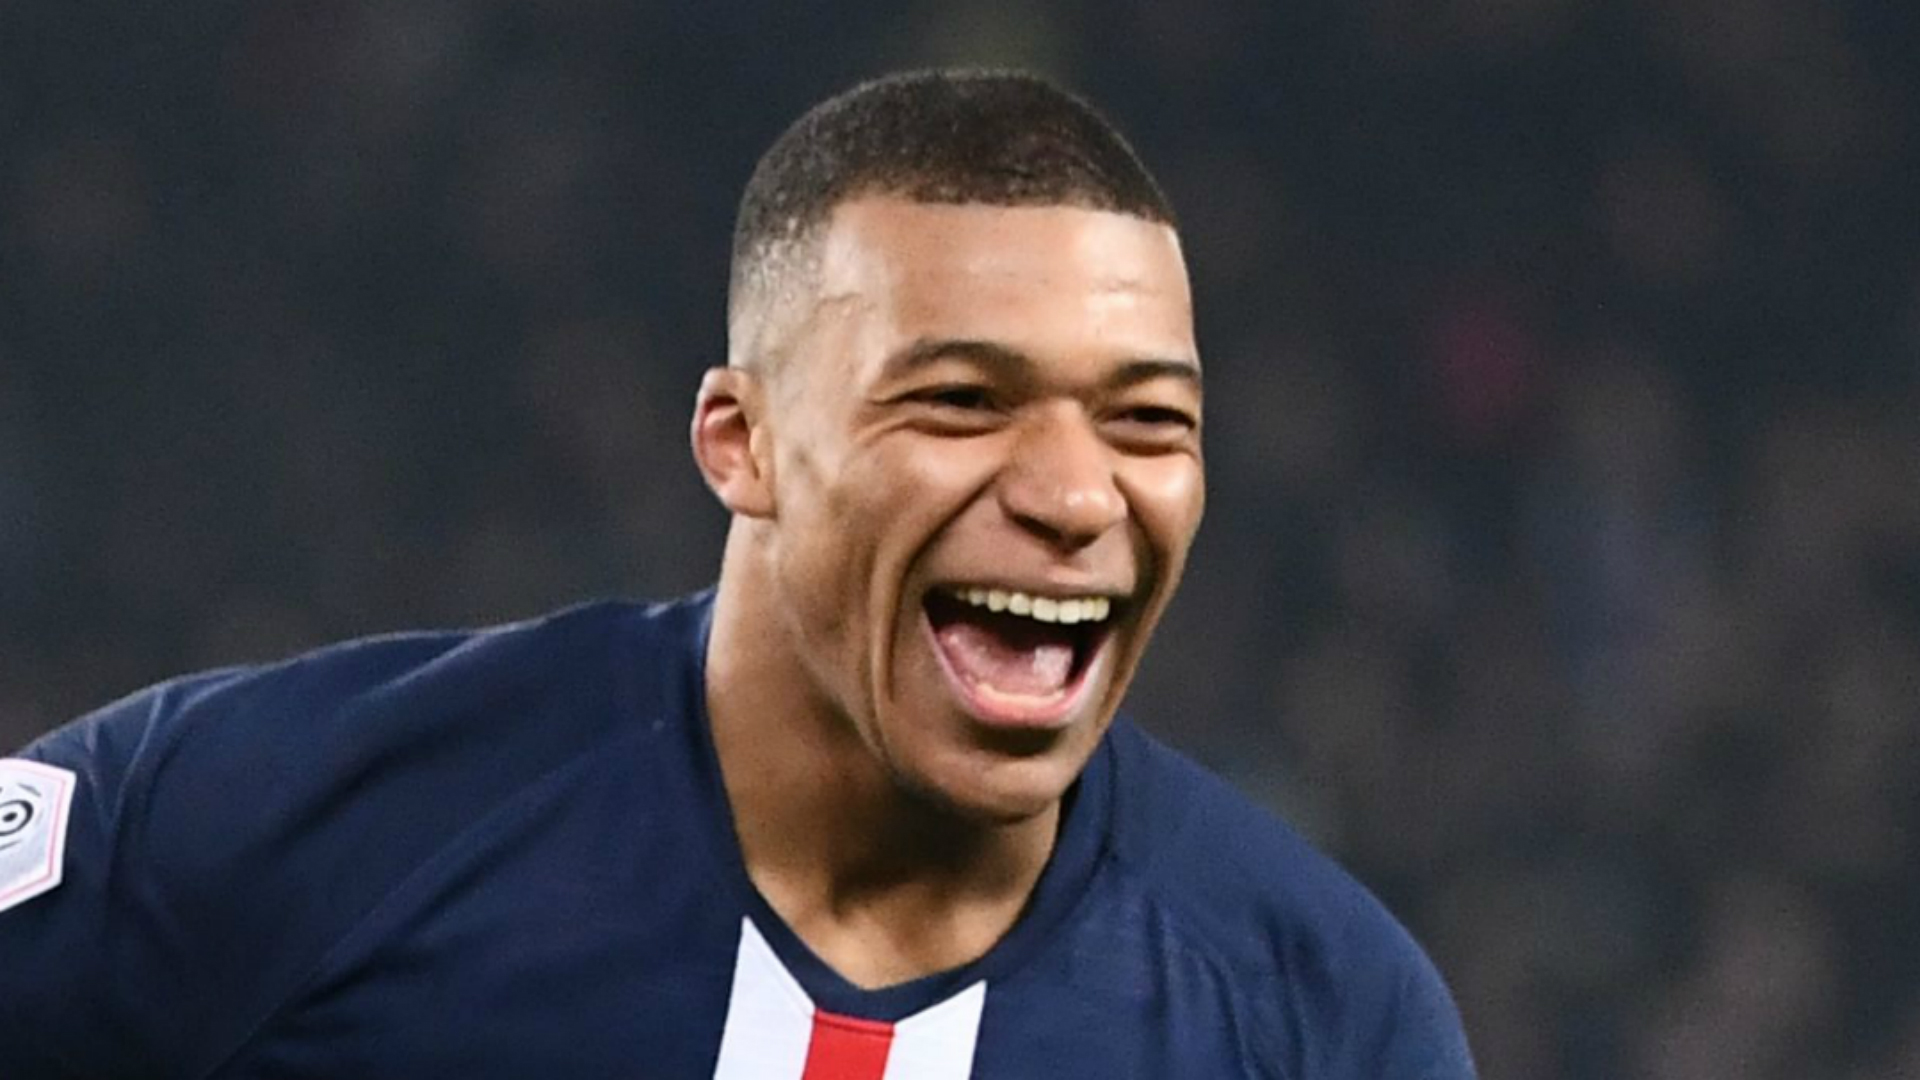 Paris Saint-Germain 2-0 Nantes: Mbappe and Neymar help champions win three in a row